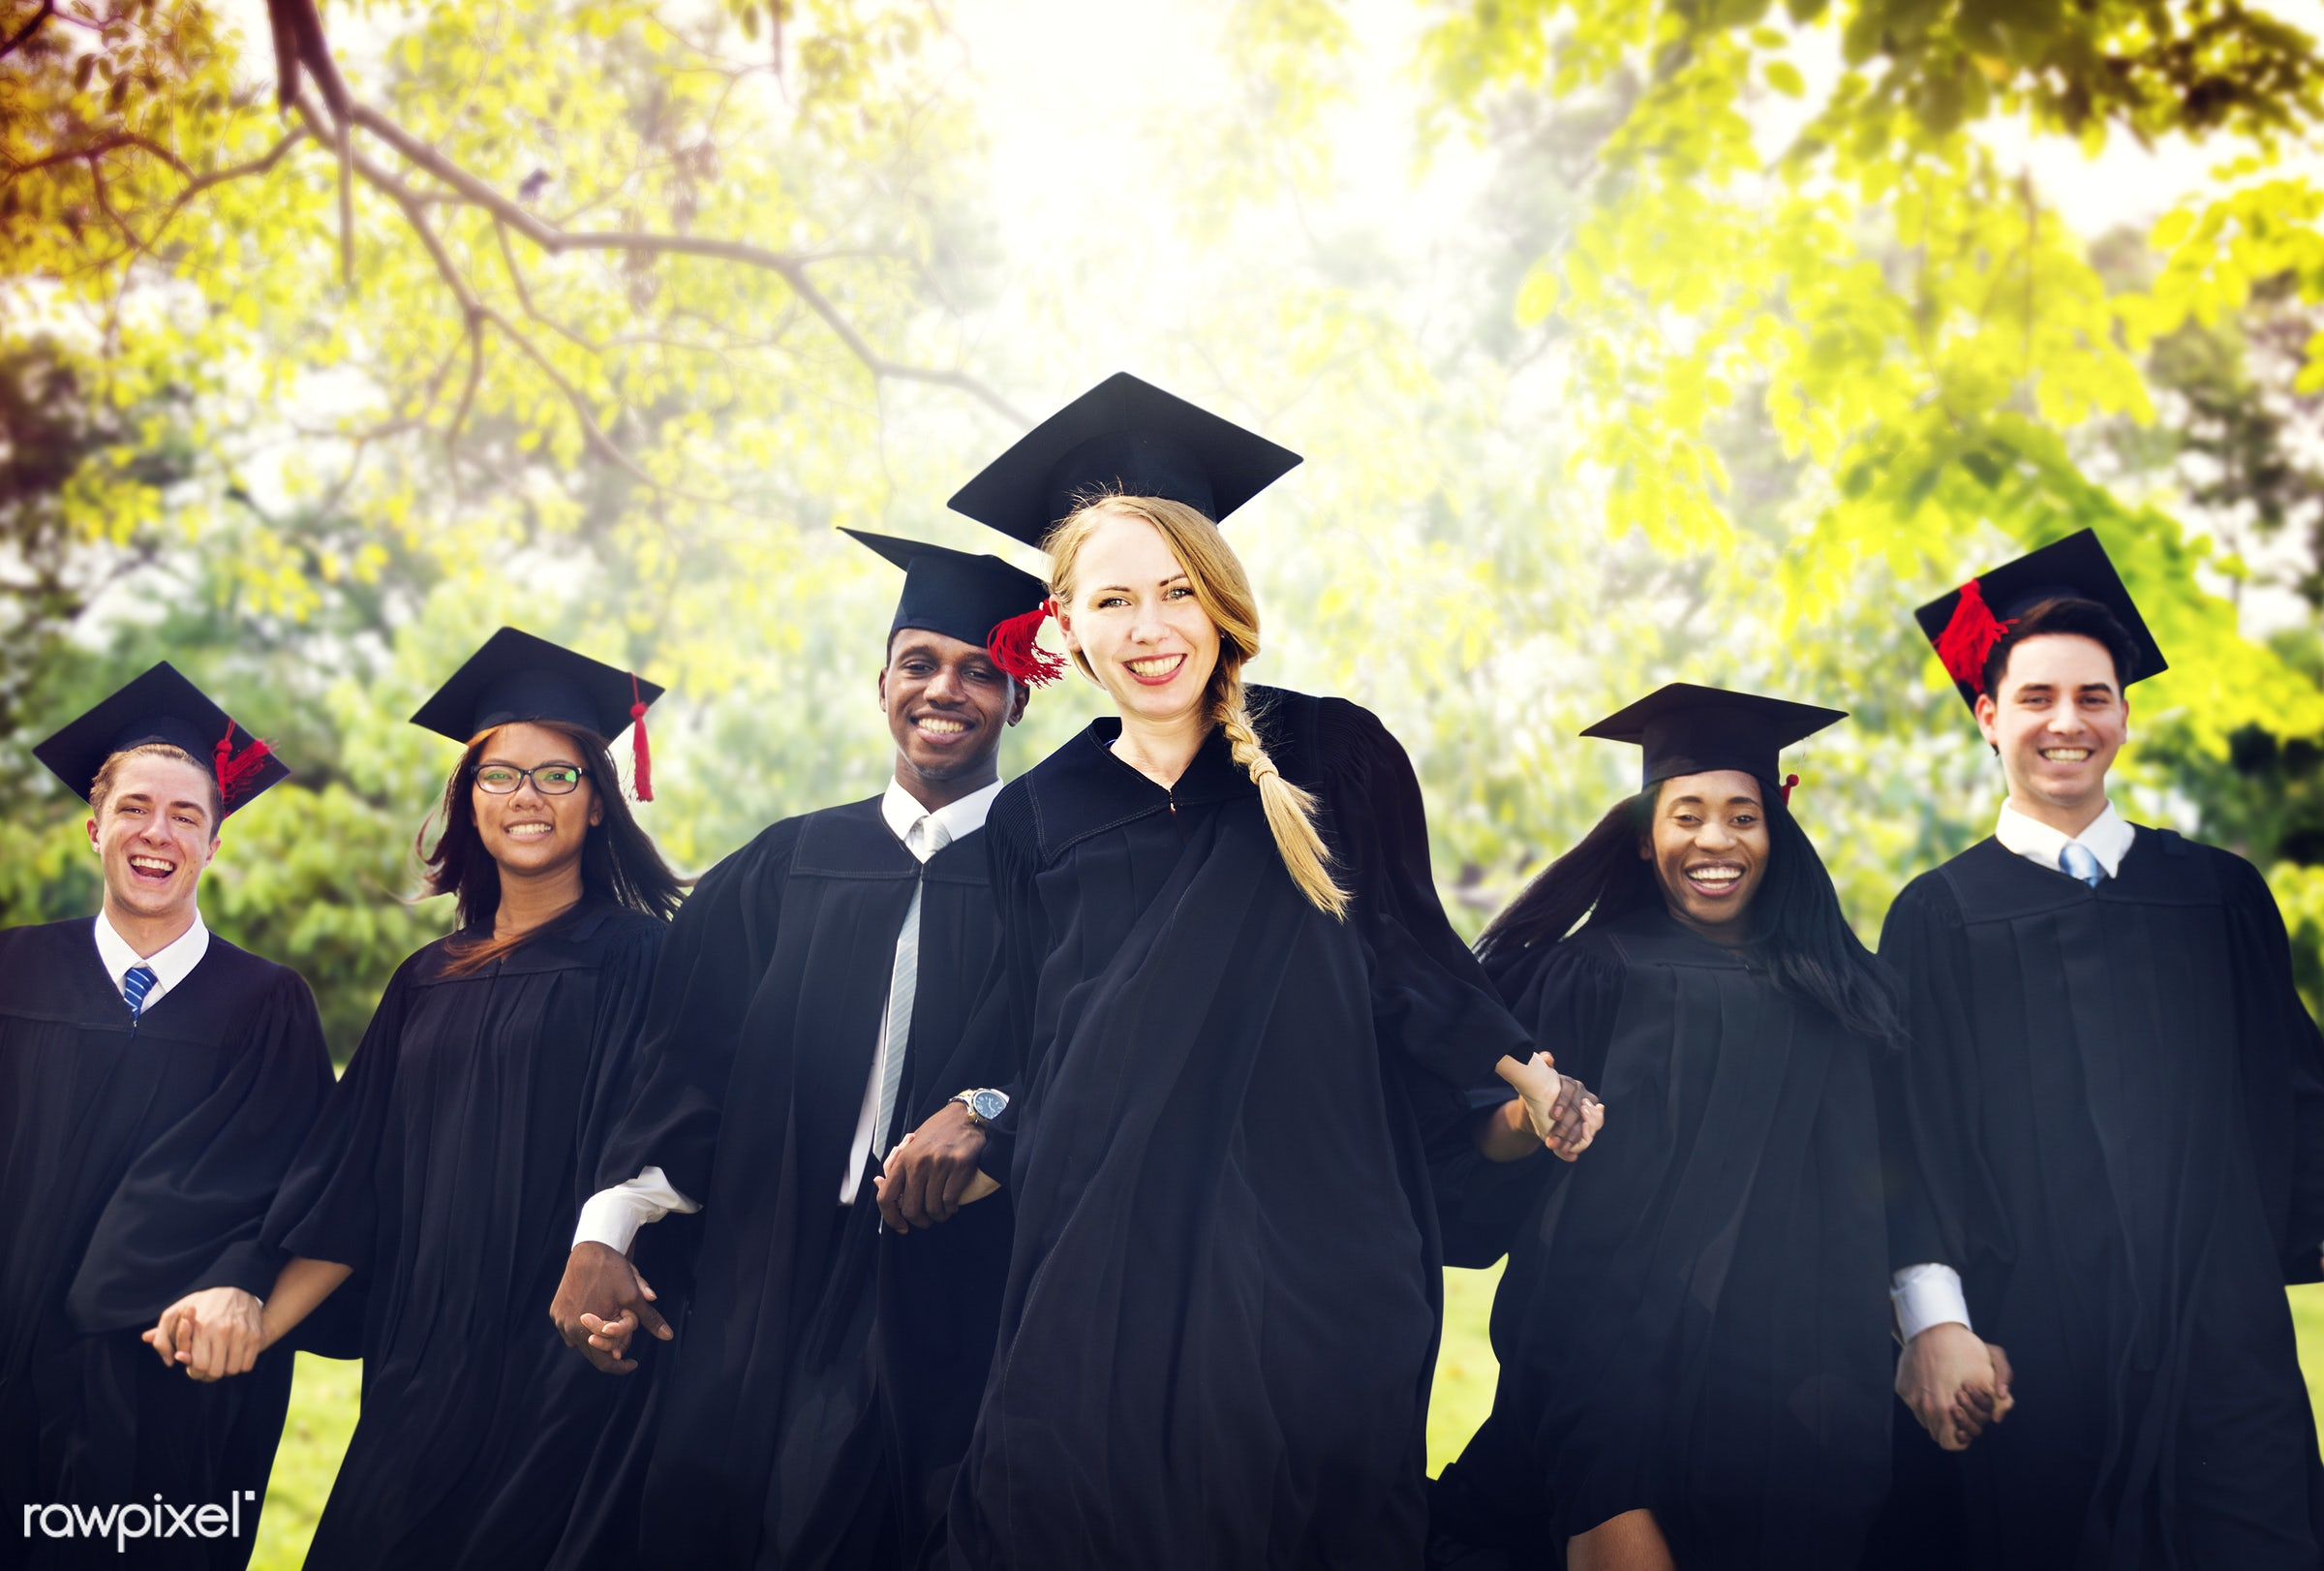 academic, achievement, african descent, altogether, asian ethnicity, celebration, ceremony, certificate, cheerful, college,...